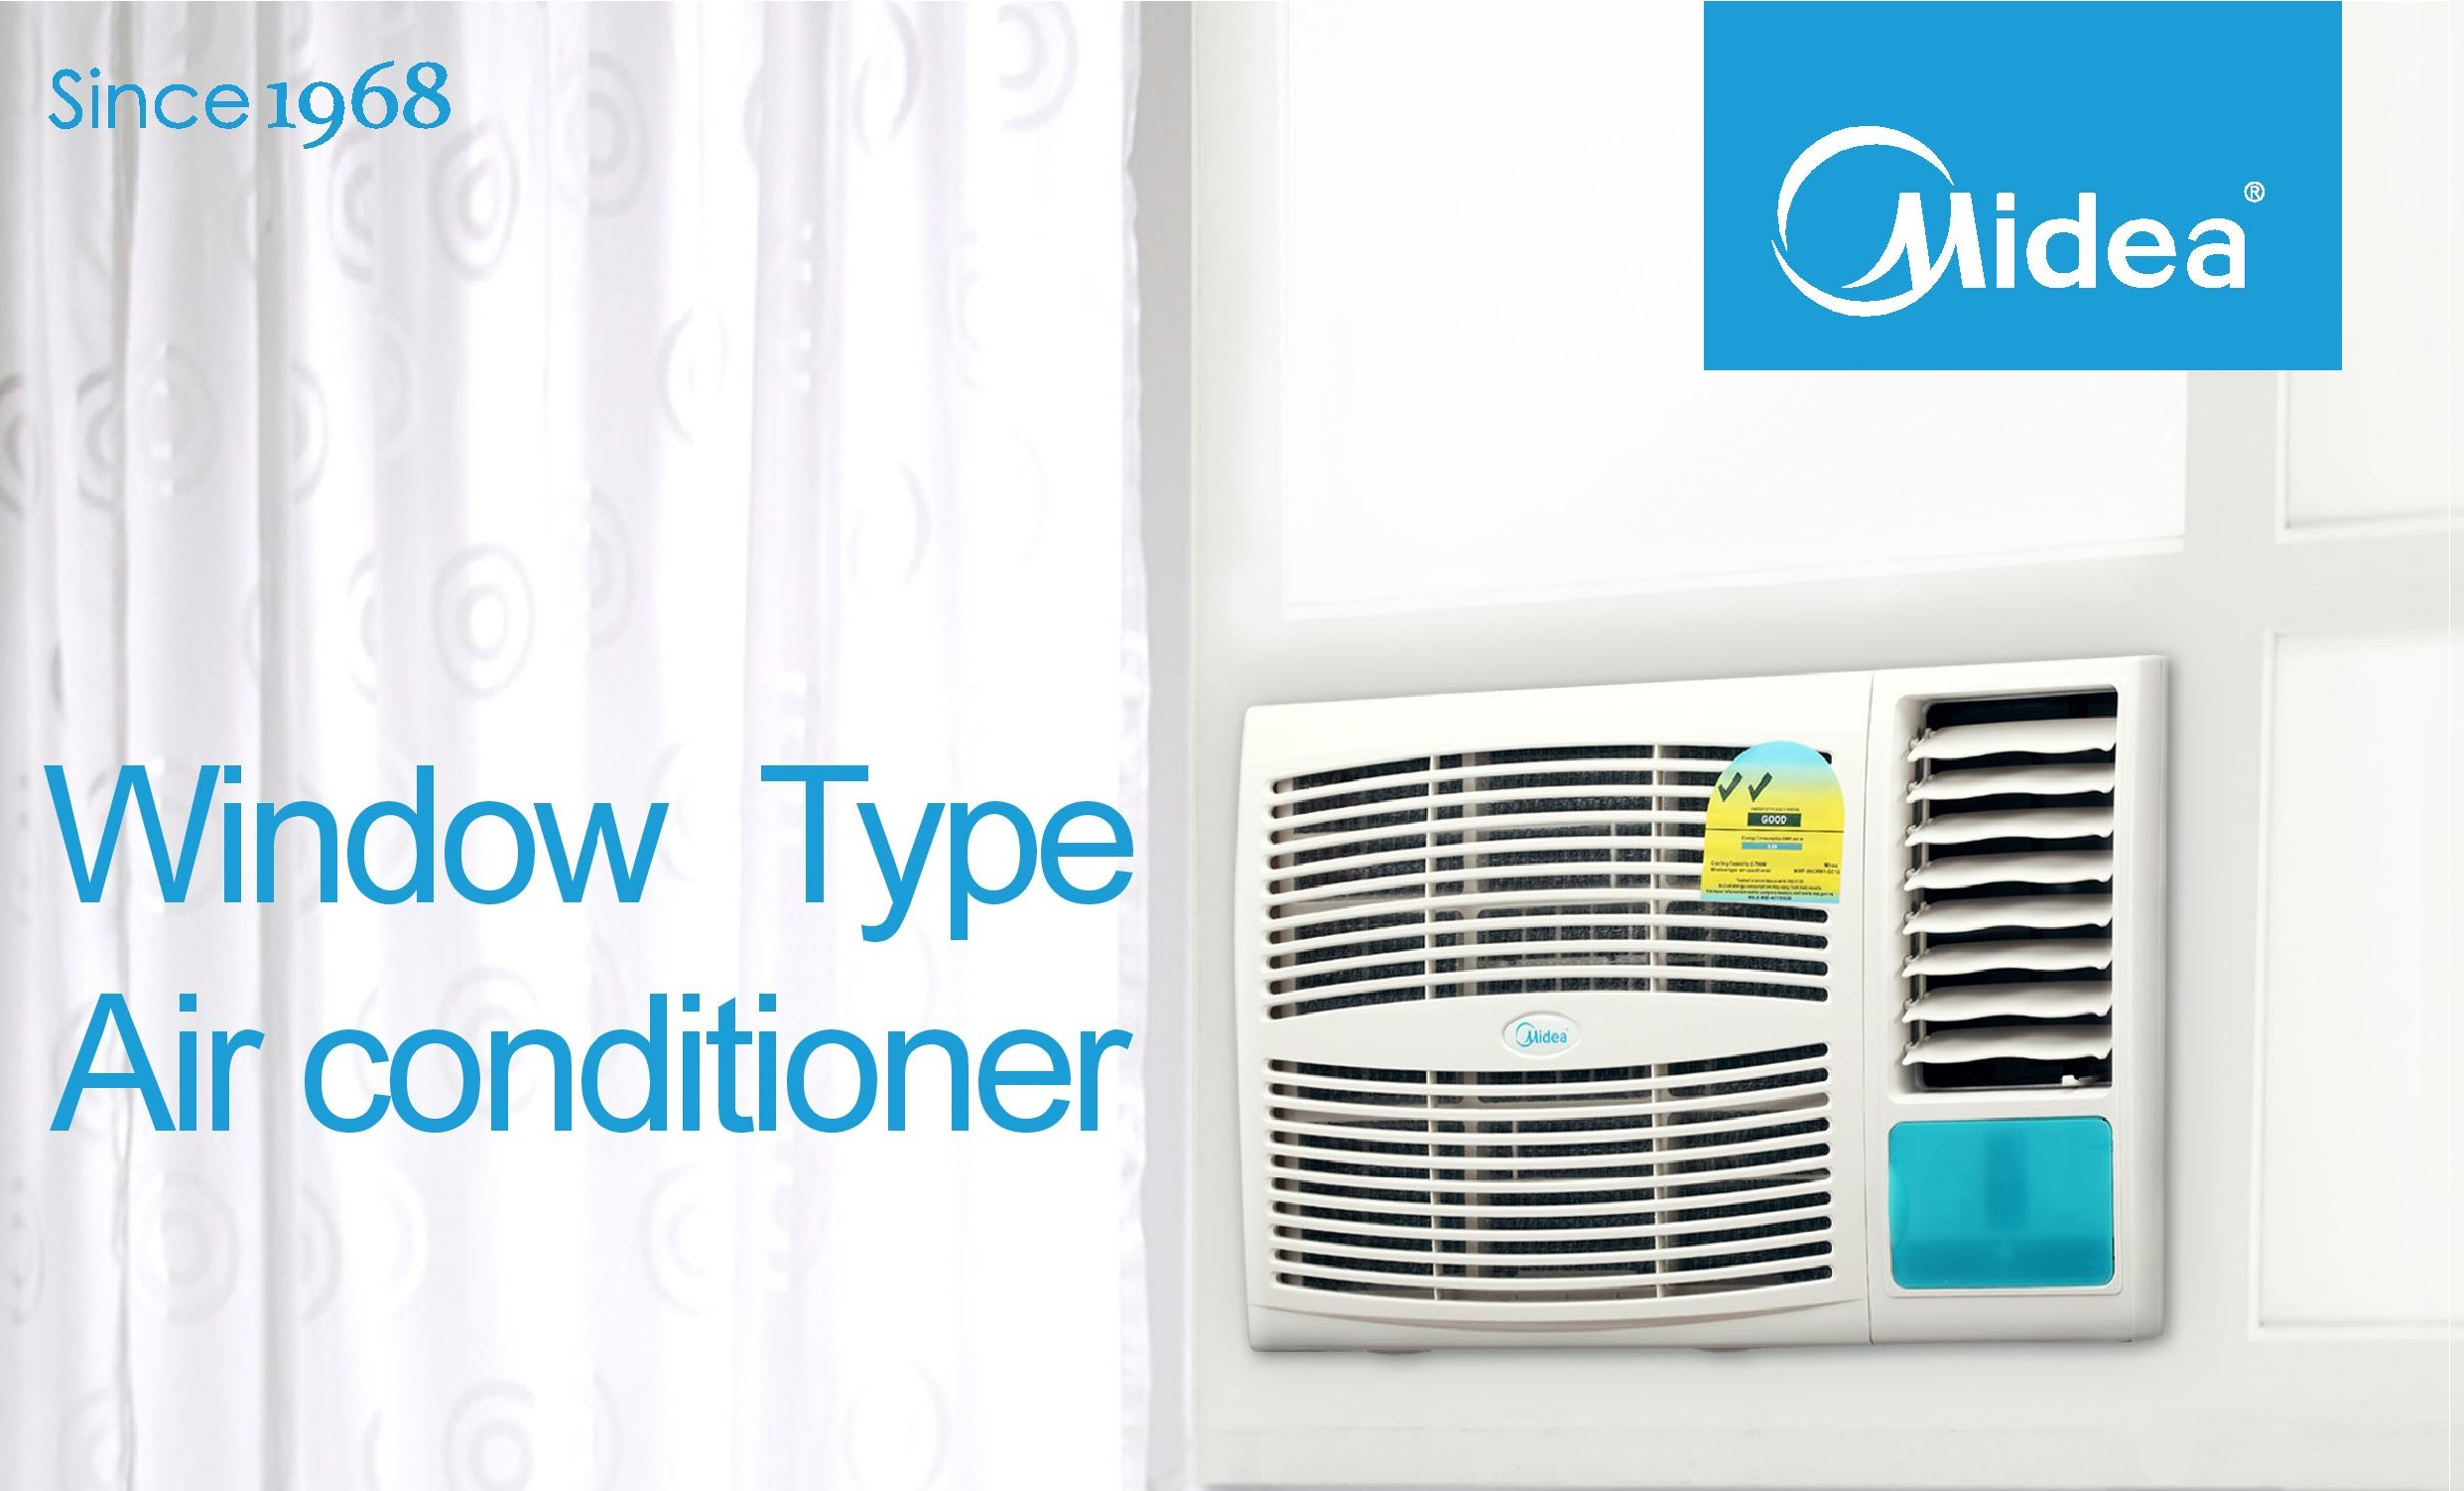 Midea Window AirCon Promotion #1685B5